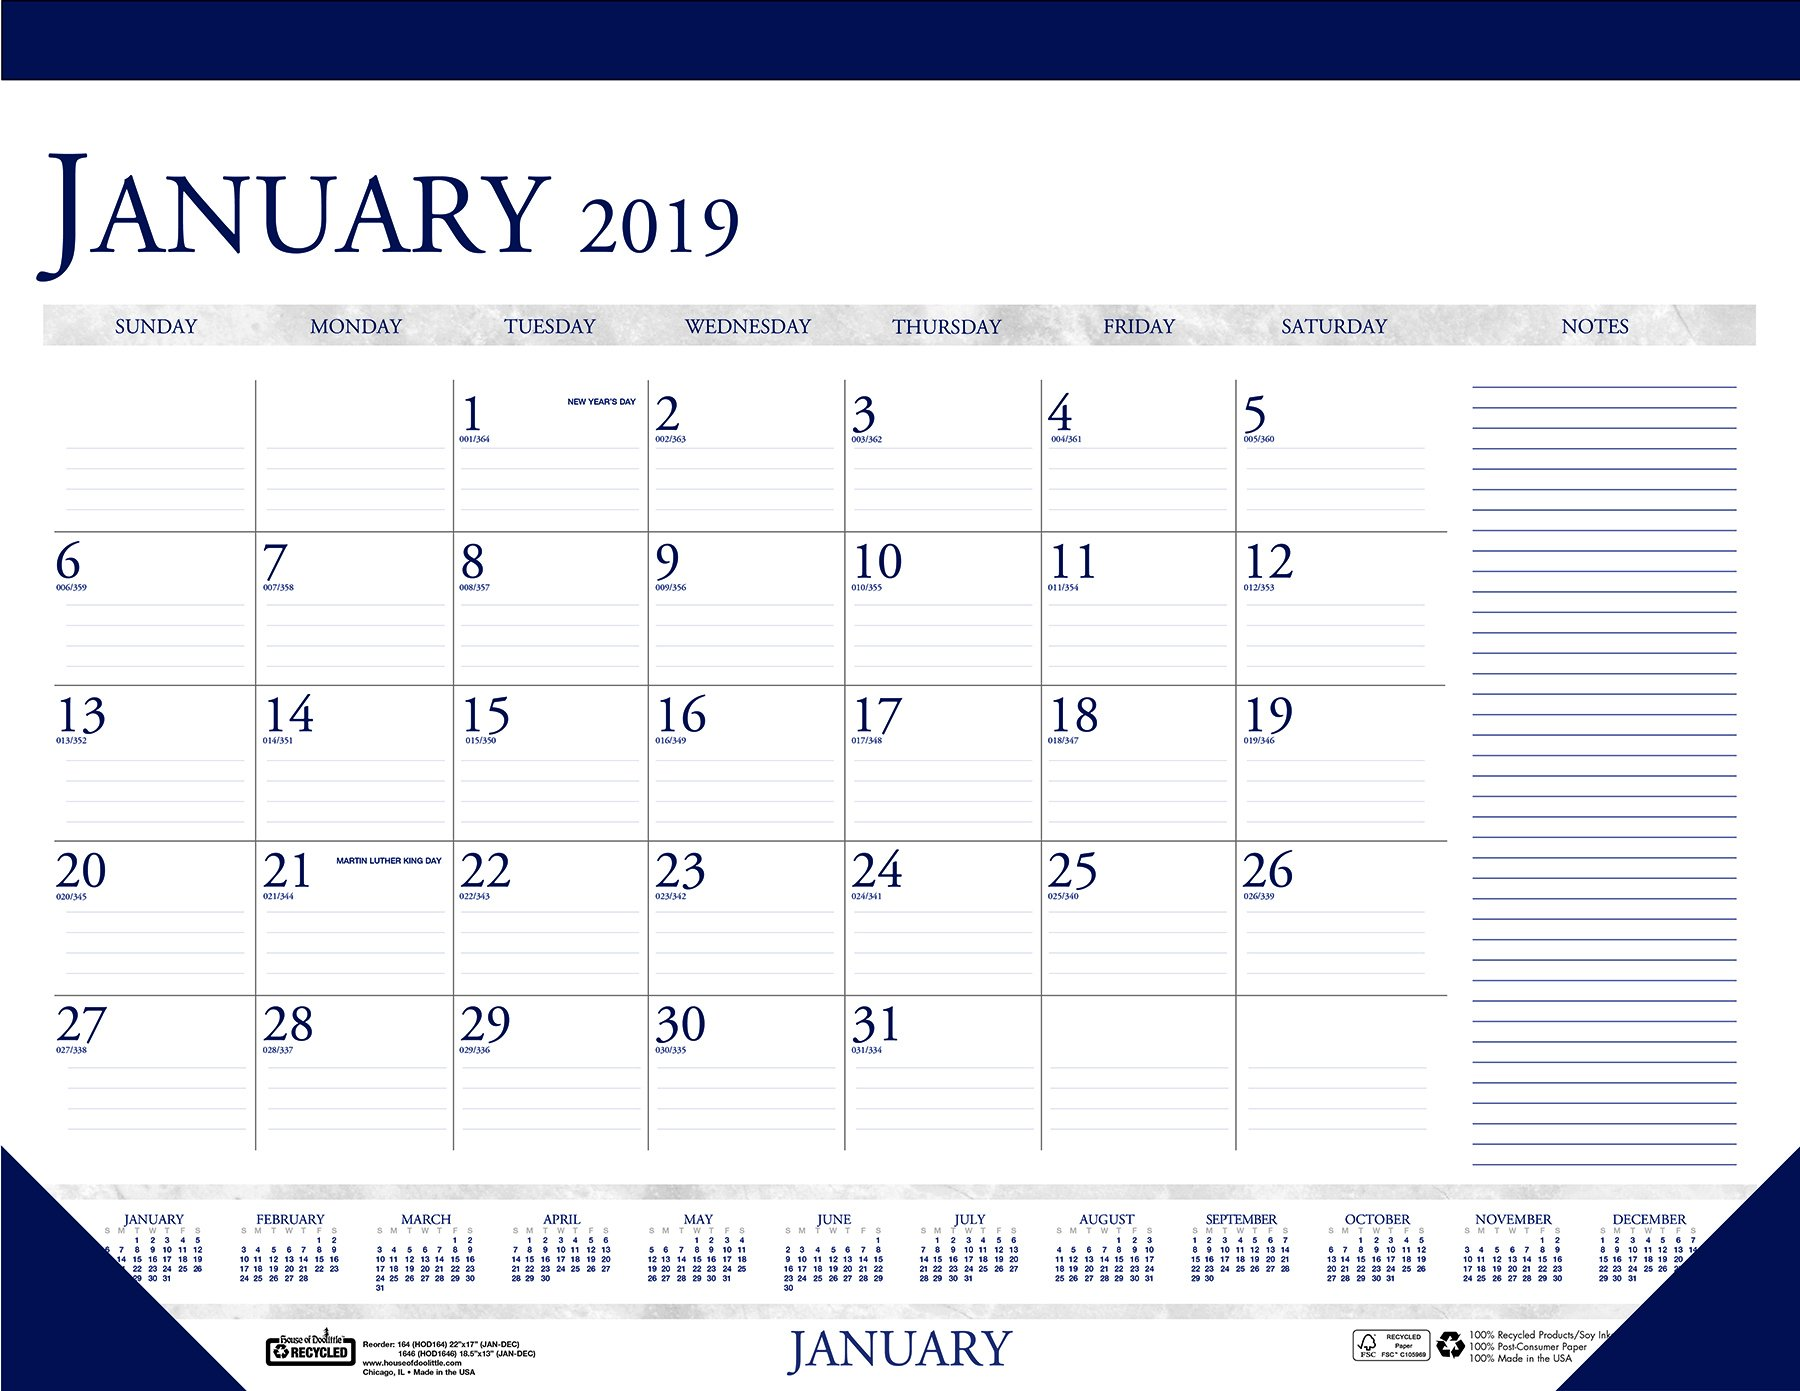 House of Doolittle 2019 Monthly Desk Pad Calendar, Classic With Notes Section, 22 x 17 Inches, January - December (HOD164-19)